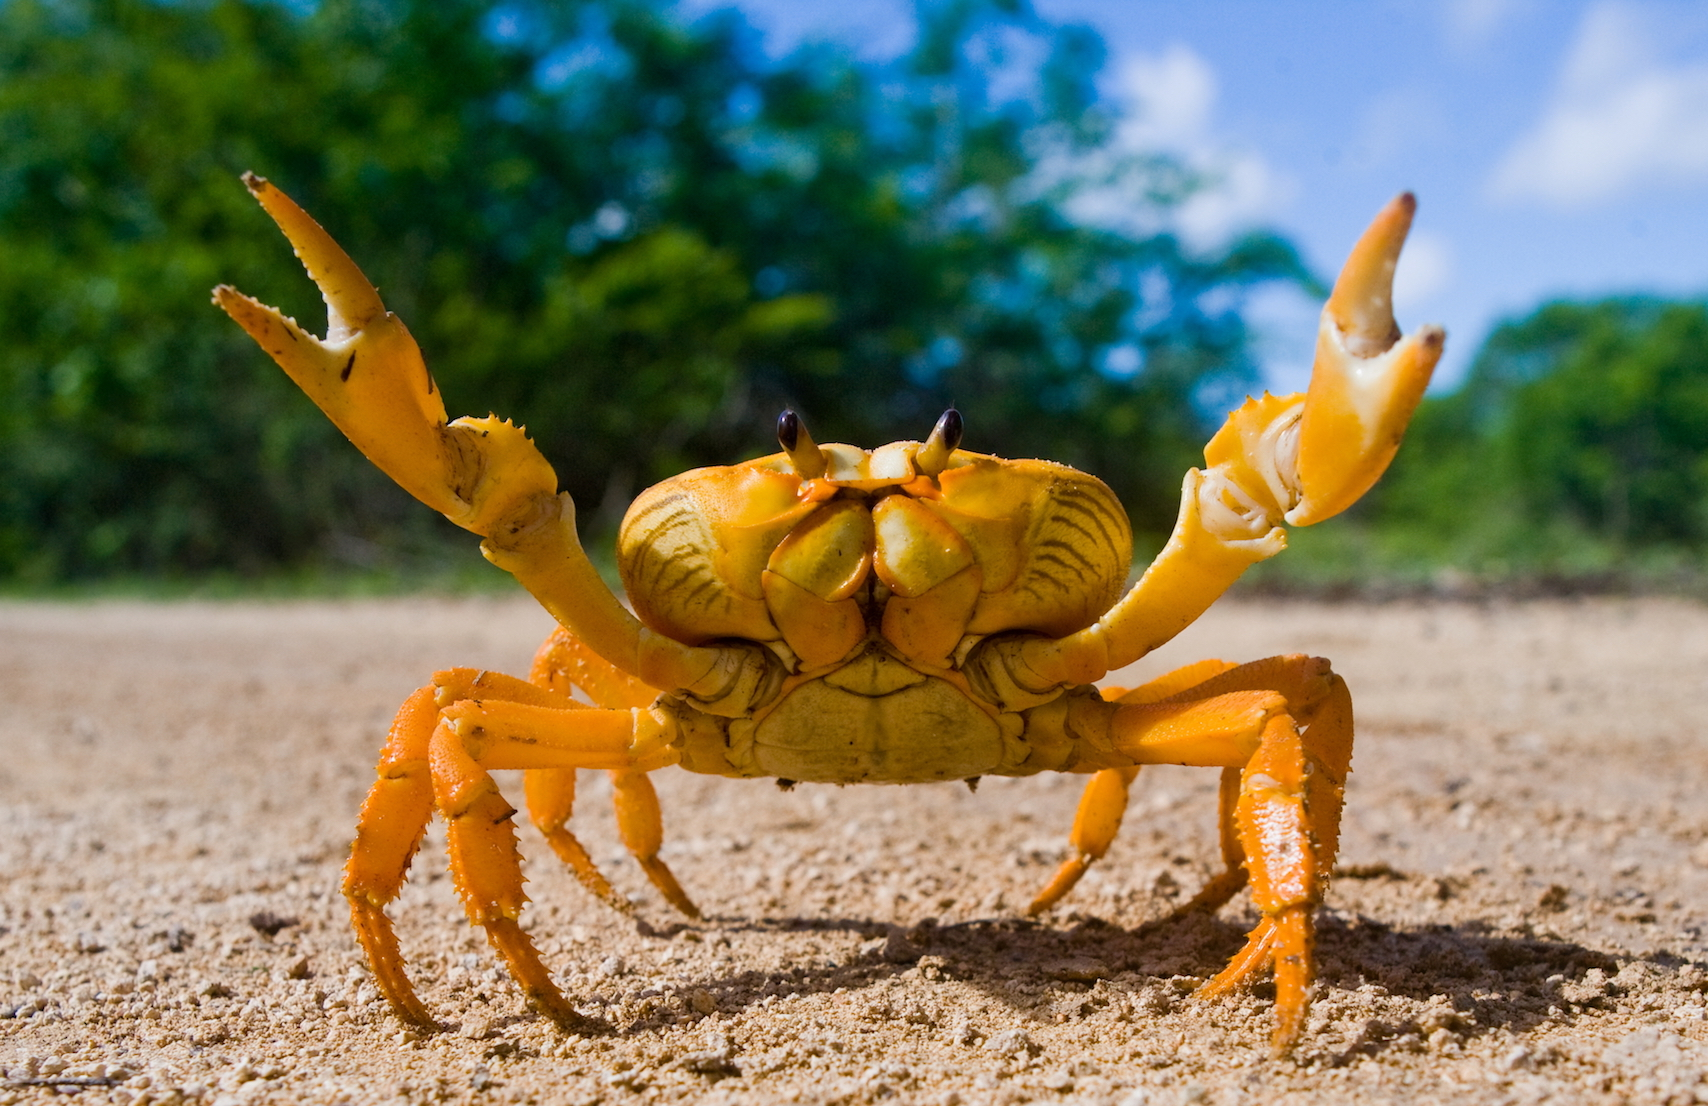 In an effort to avoid predators, ghost crabs in the Solomon Islands seek out natural surroundings that match their color.